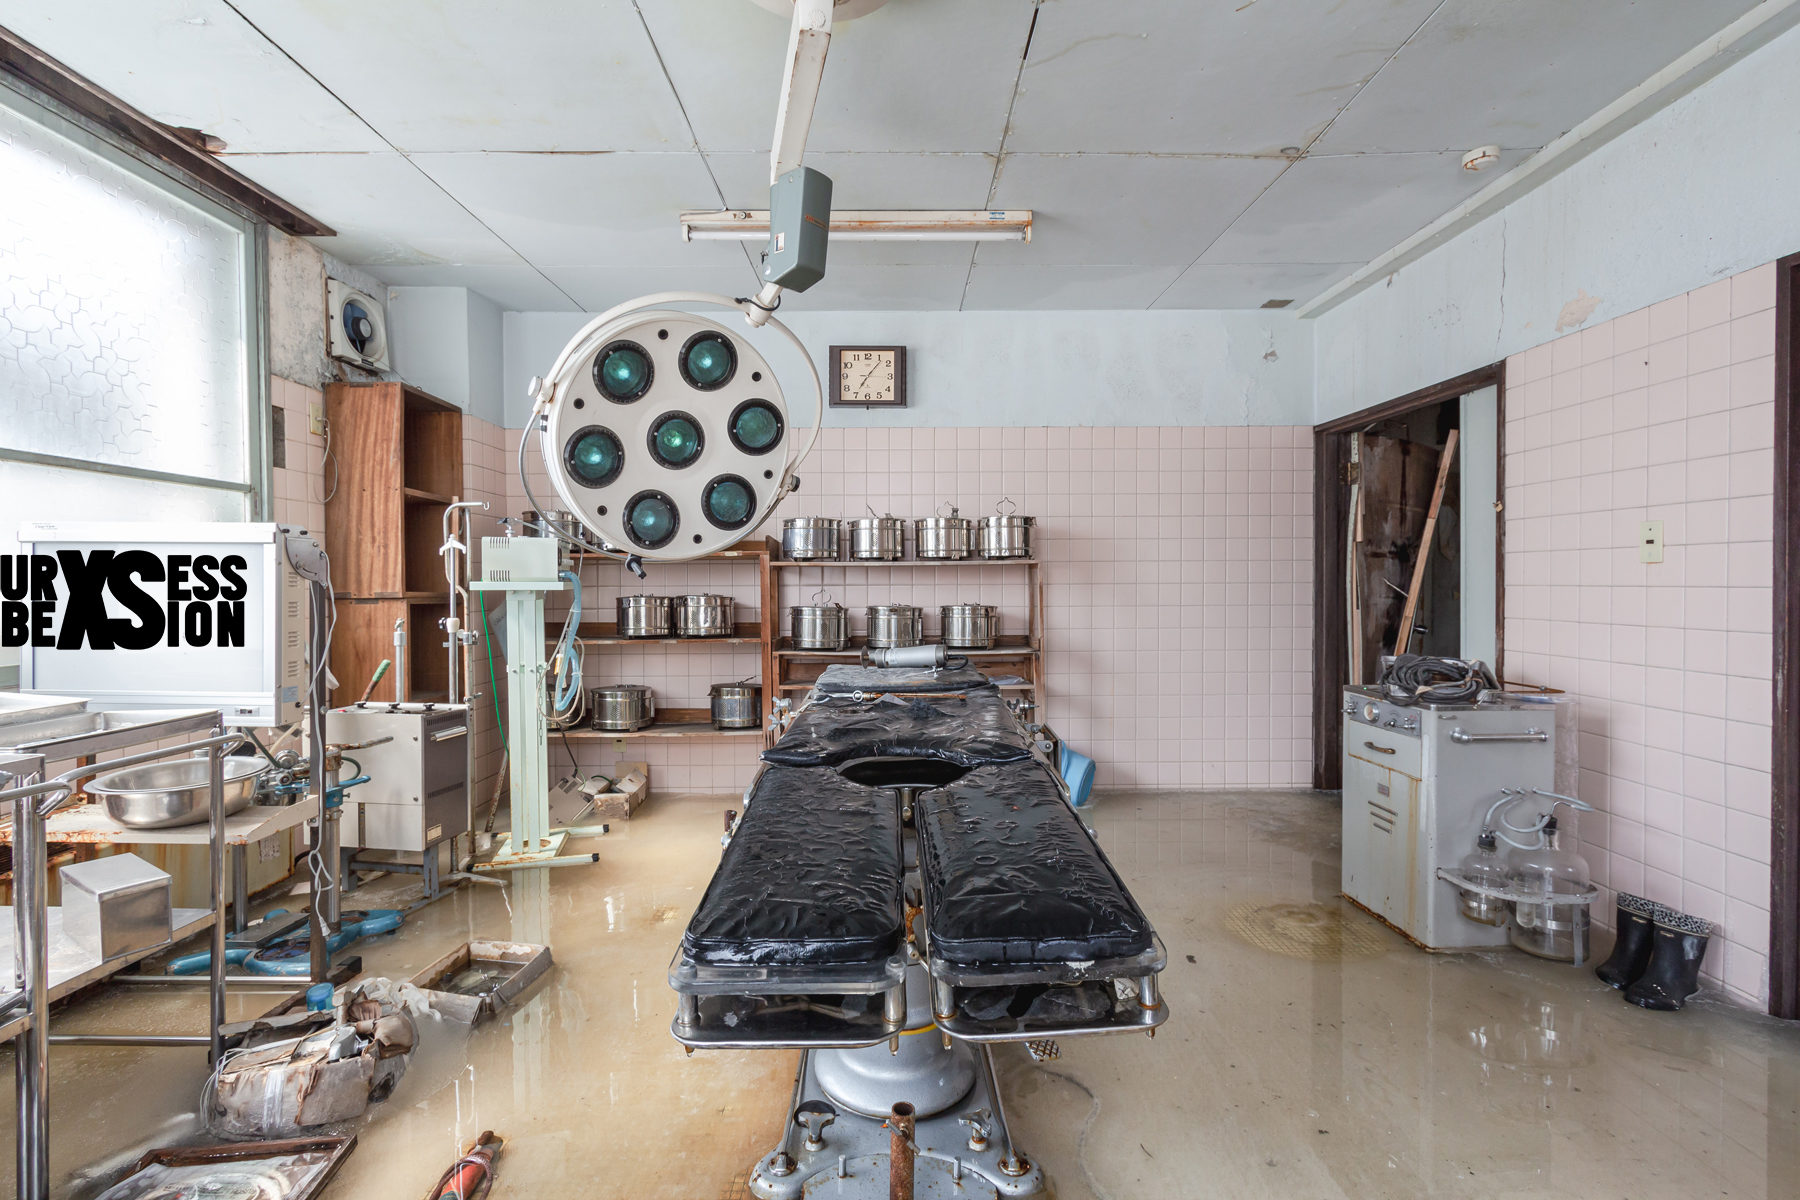 Clinique abandonnée au Japon